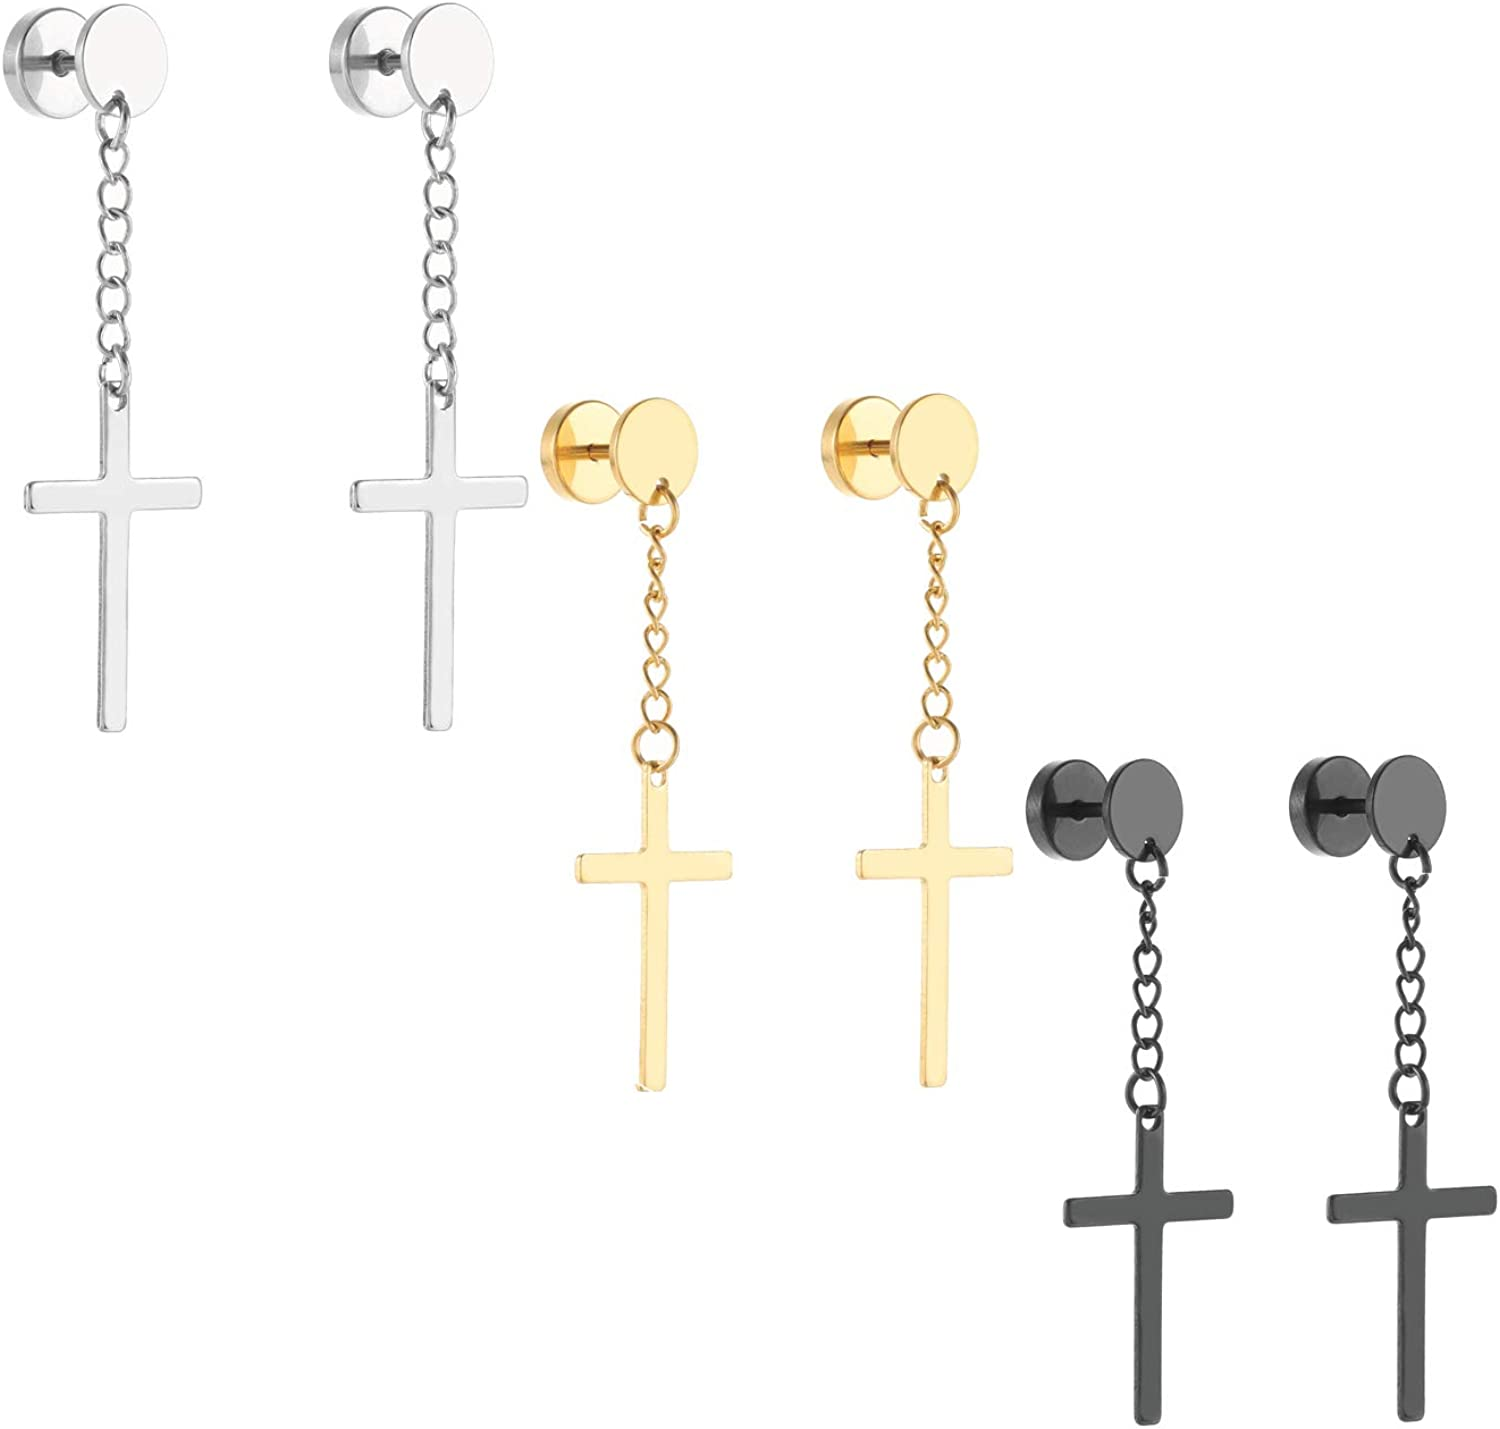 Szory Stainless Steel Dangle Cross Earrings for Men Women